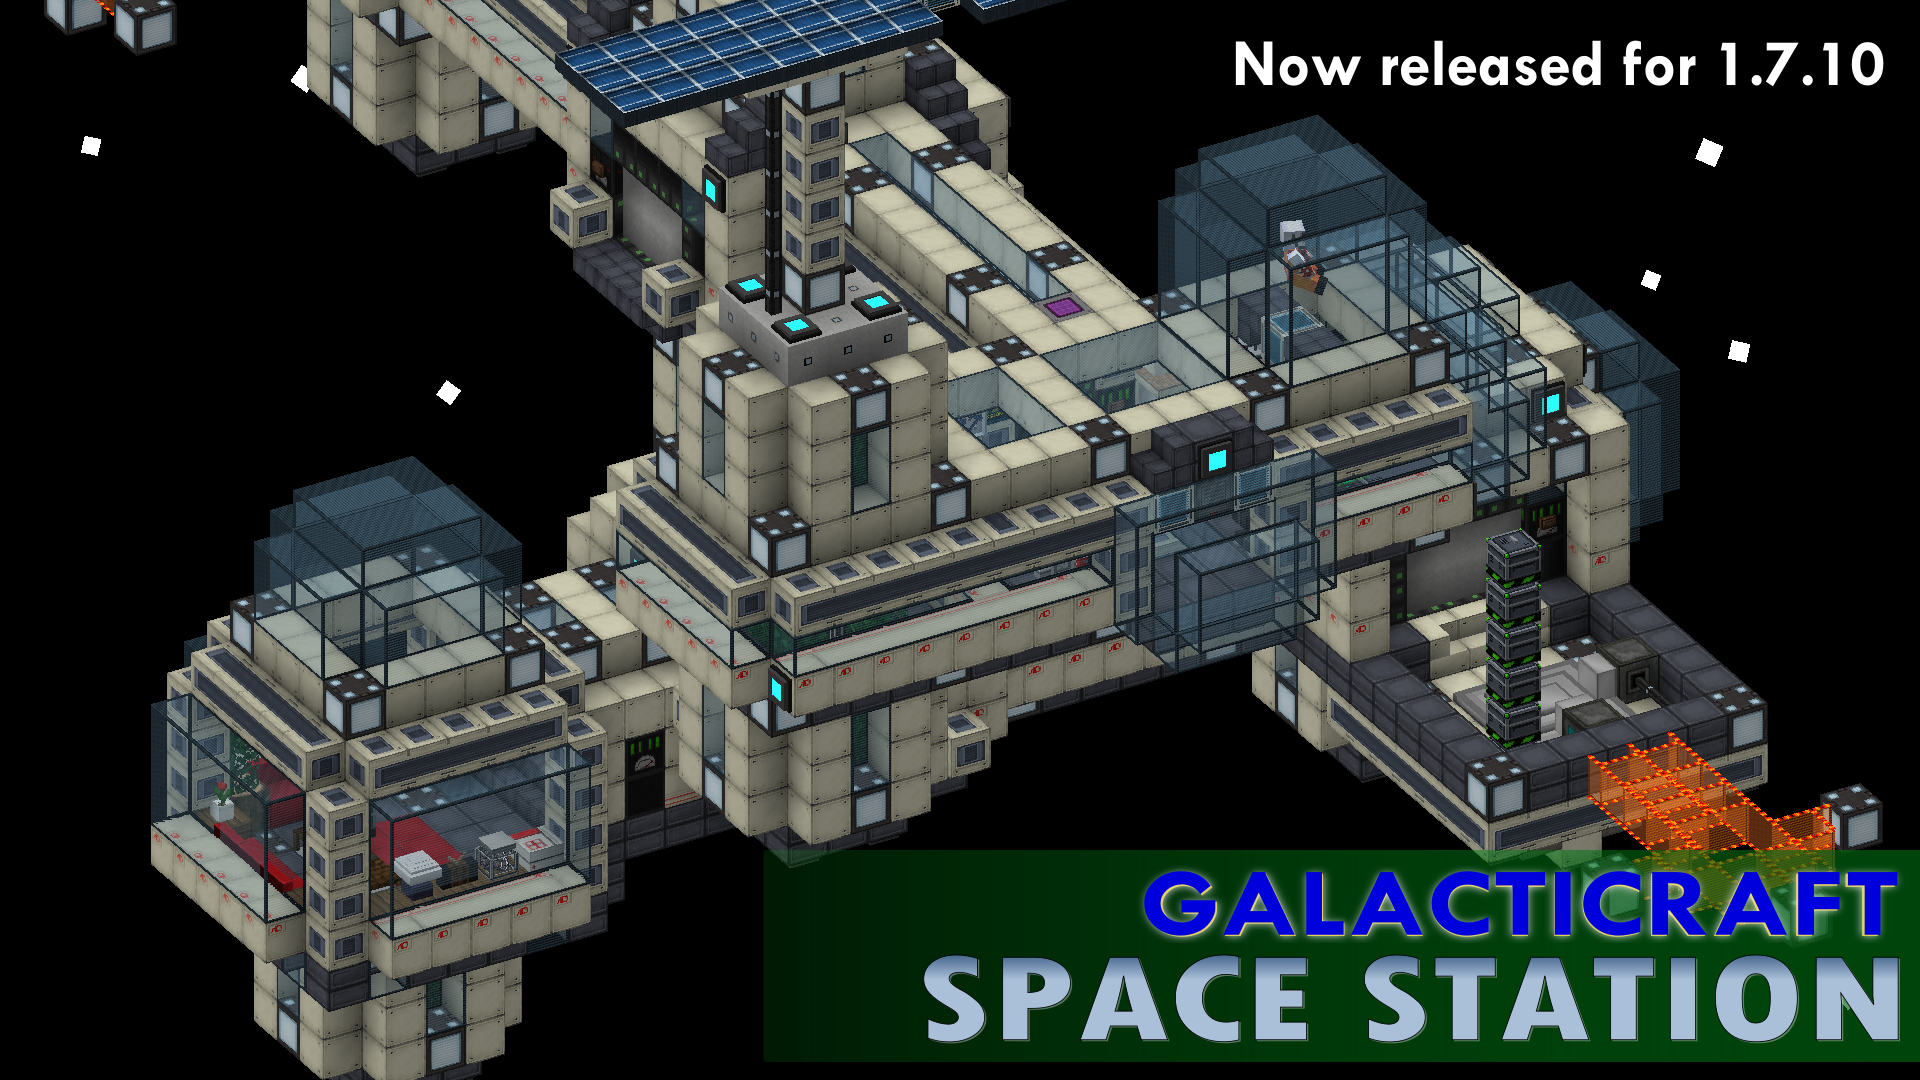 galacticraft space station 3 - photo #42